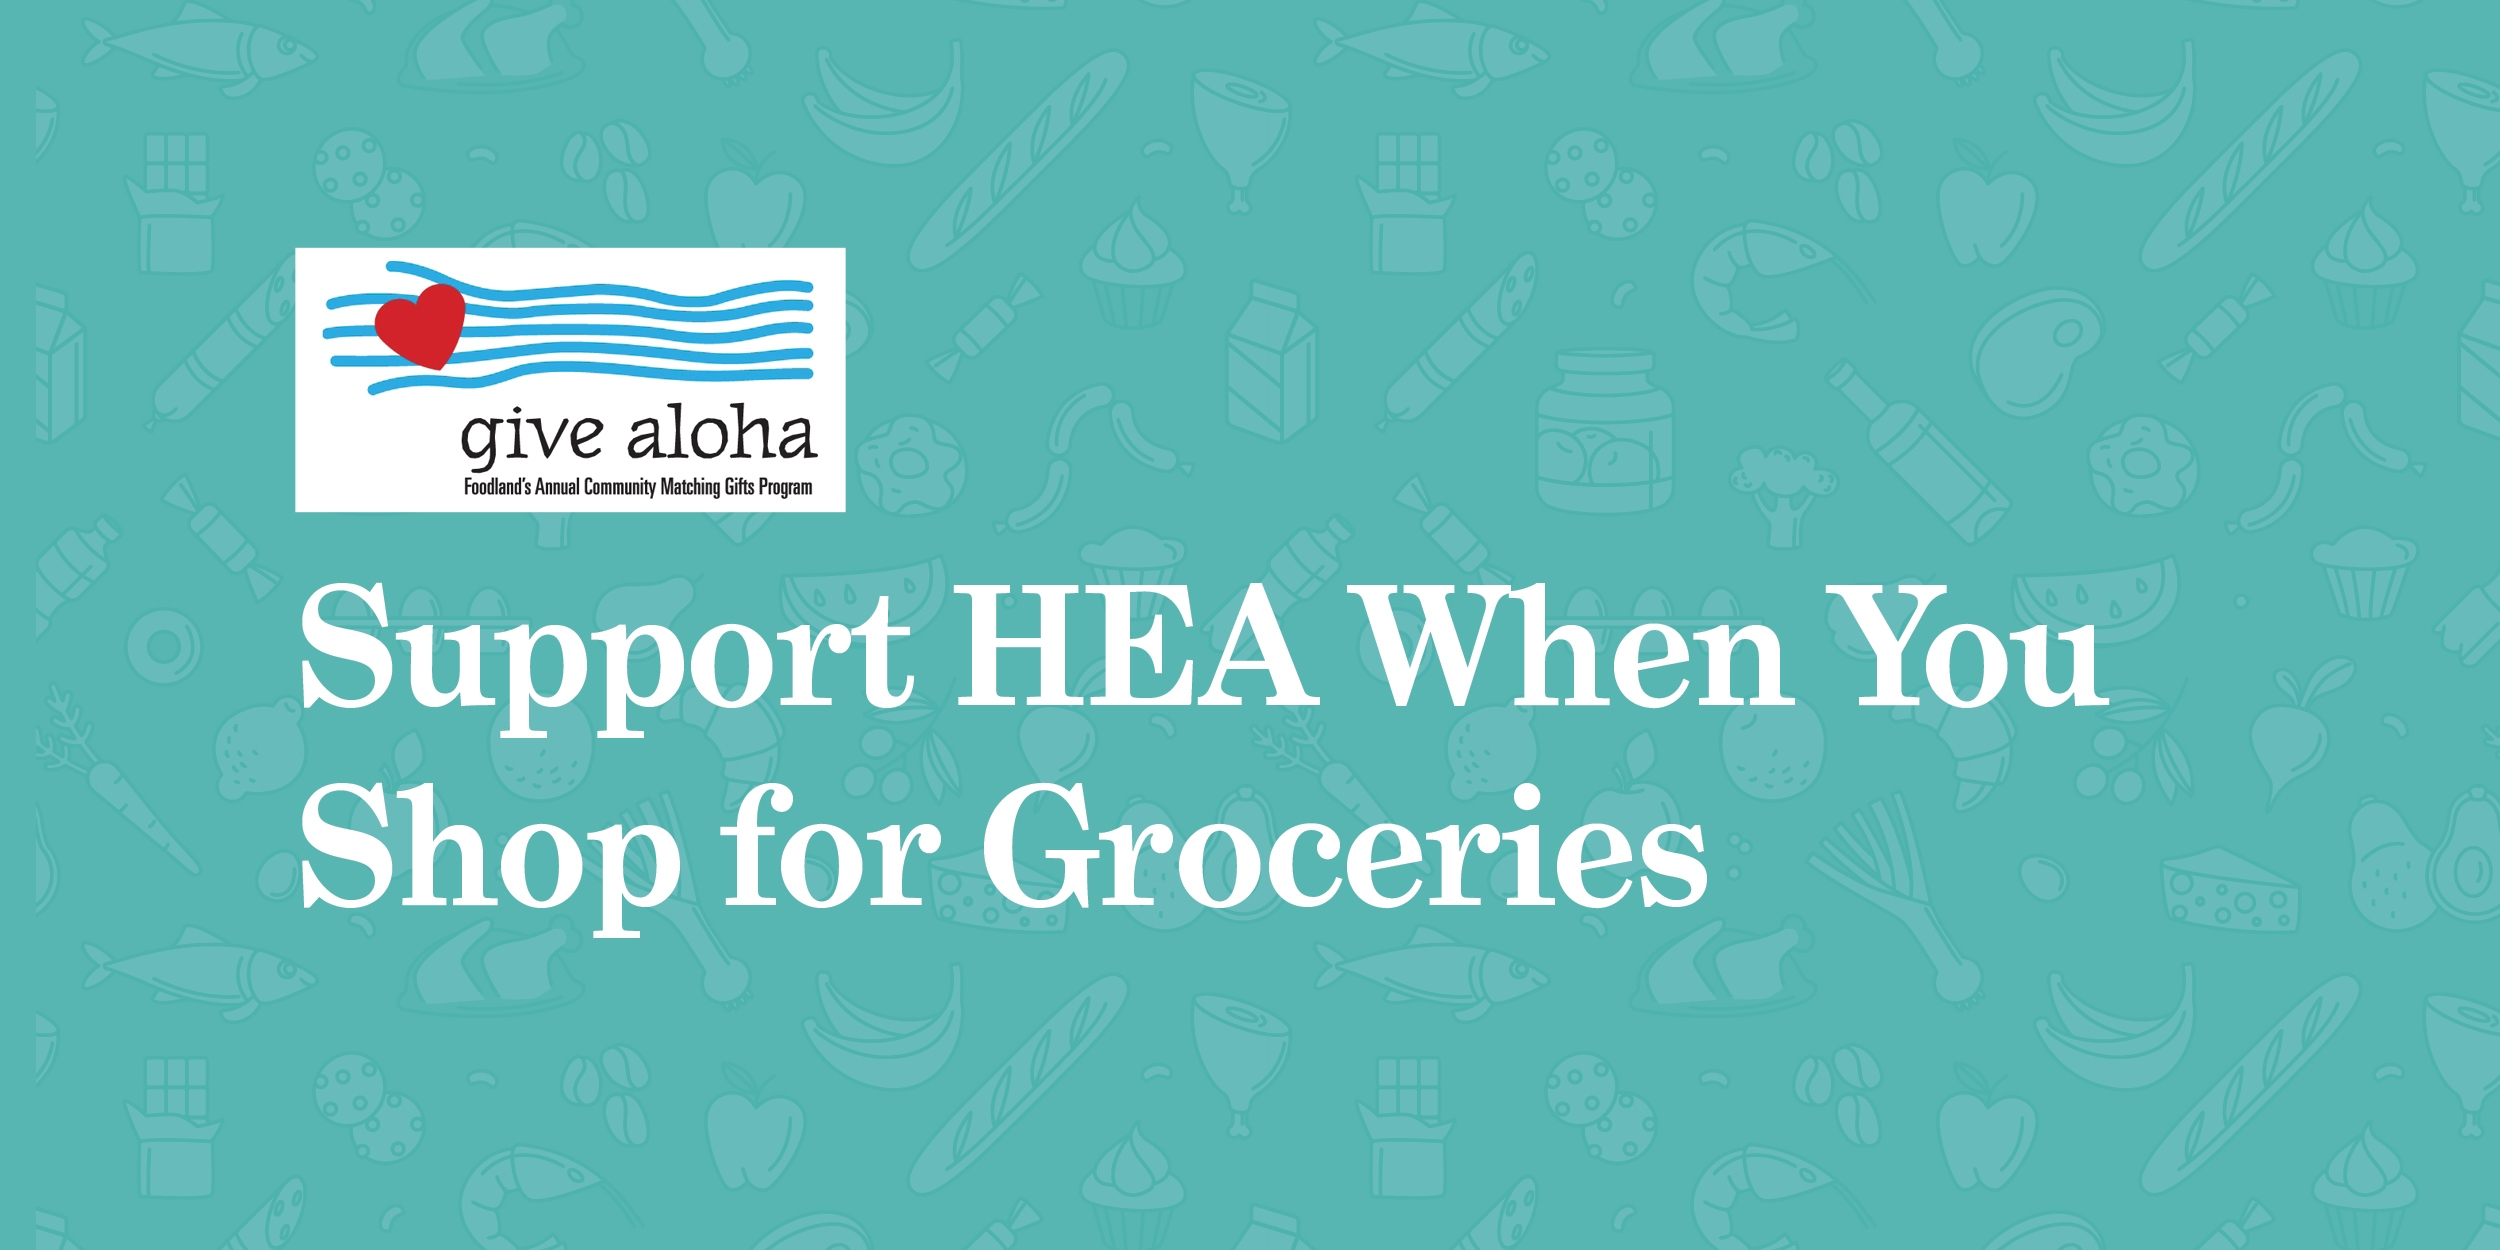 Support HEA When You Shop for Groceries